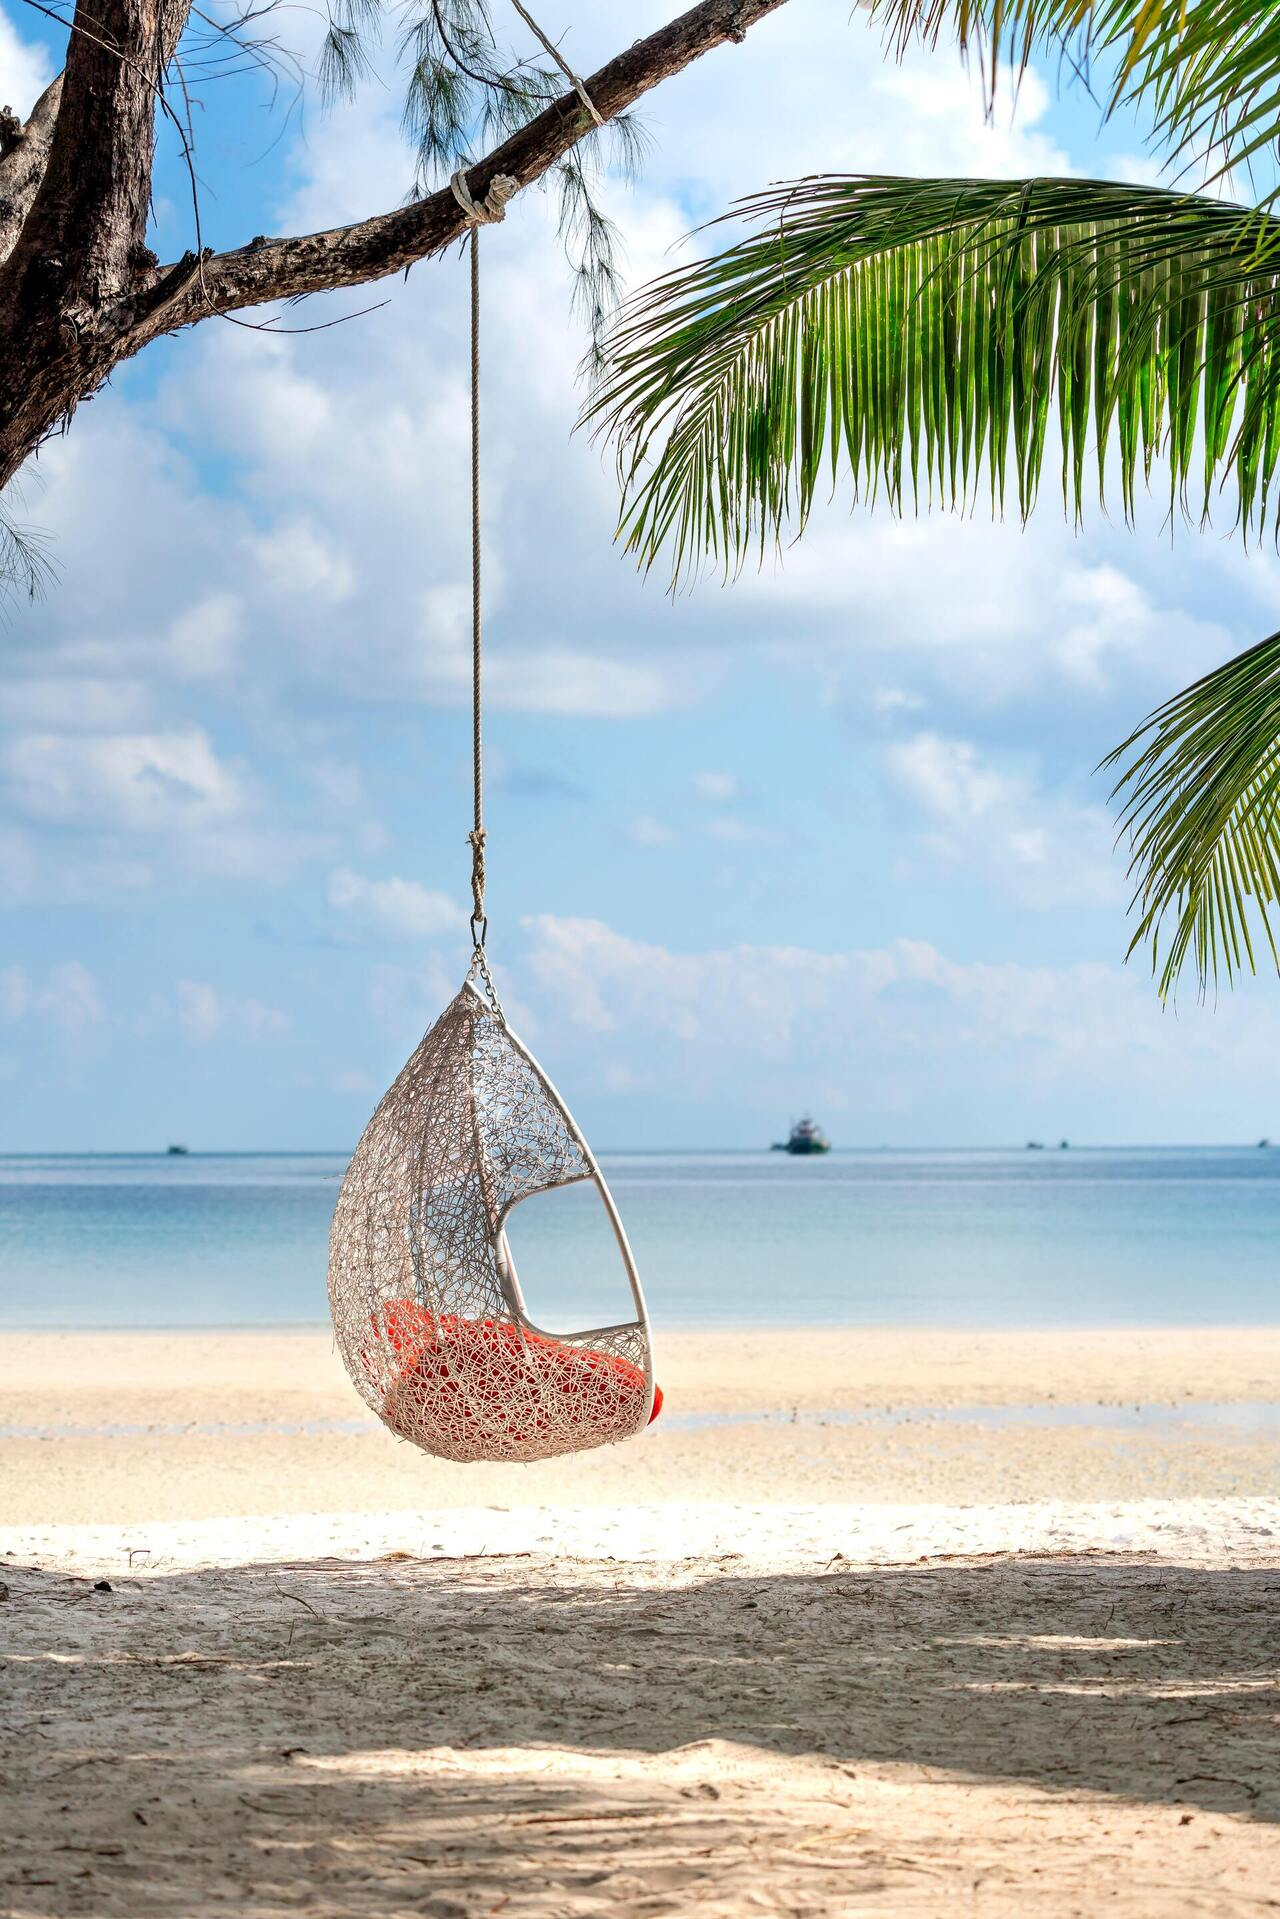 White Hanging Chair on Beach Tree